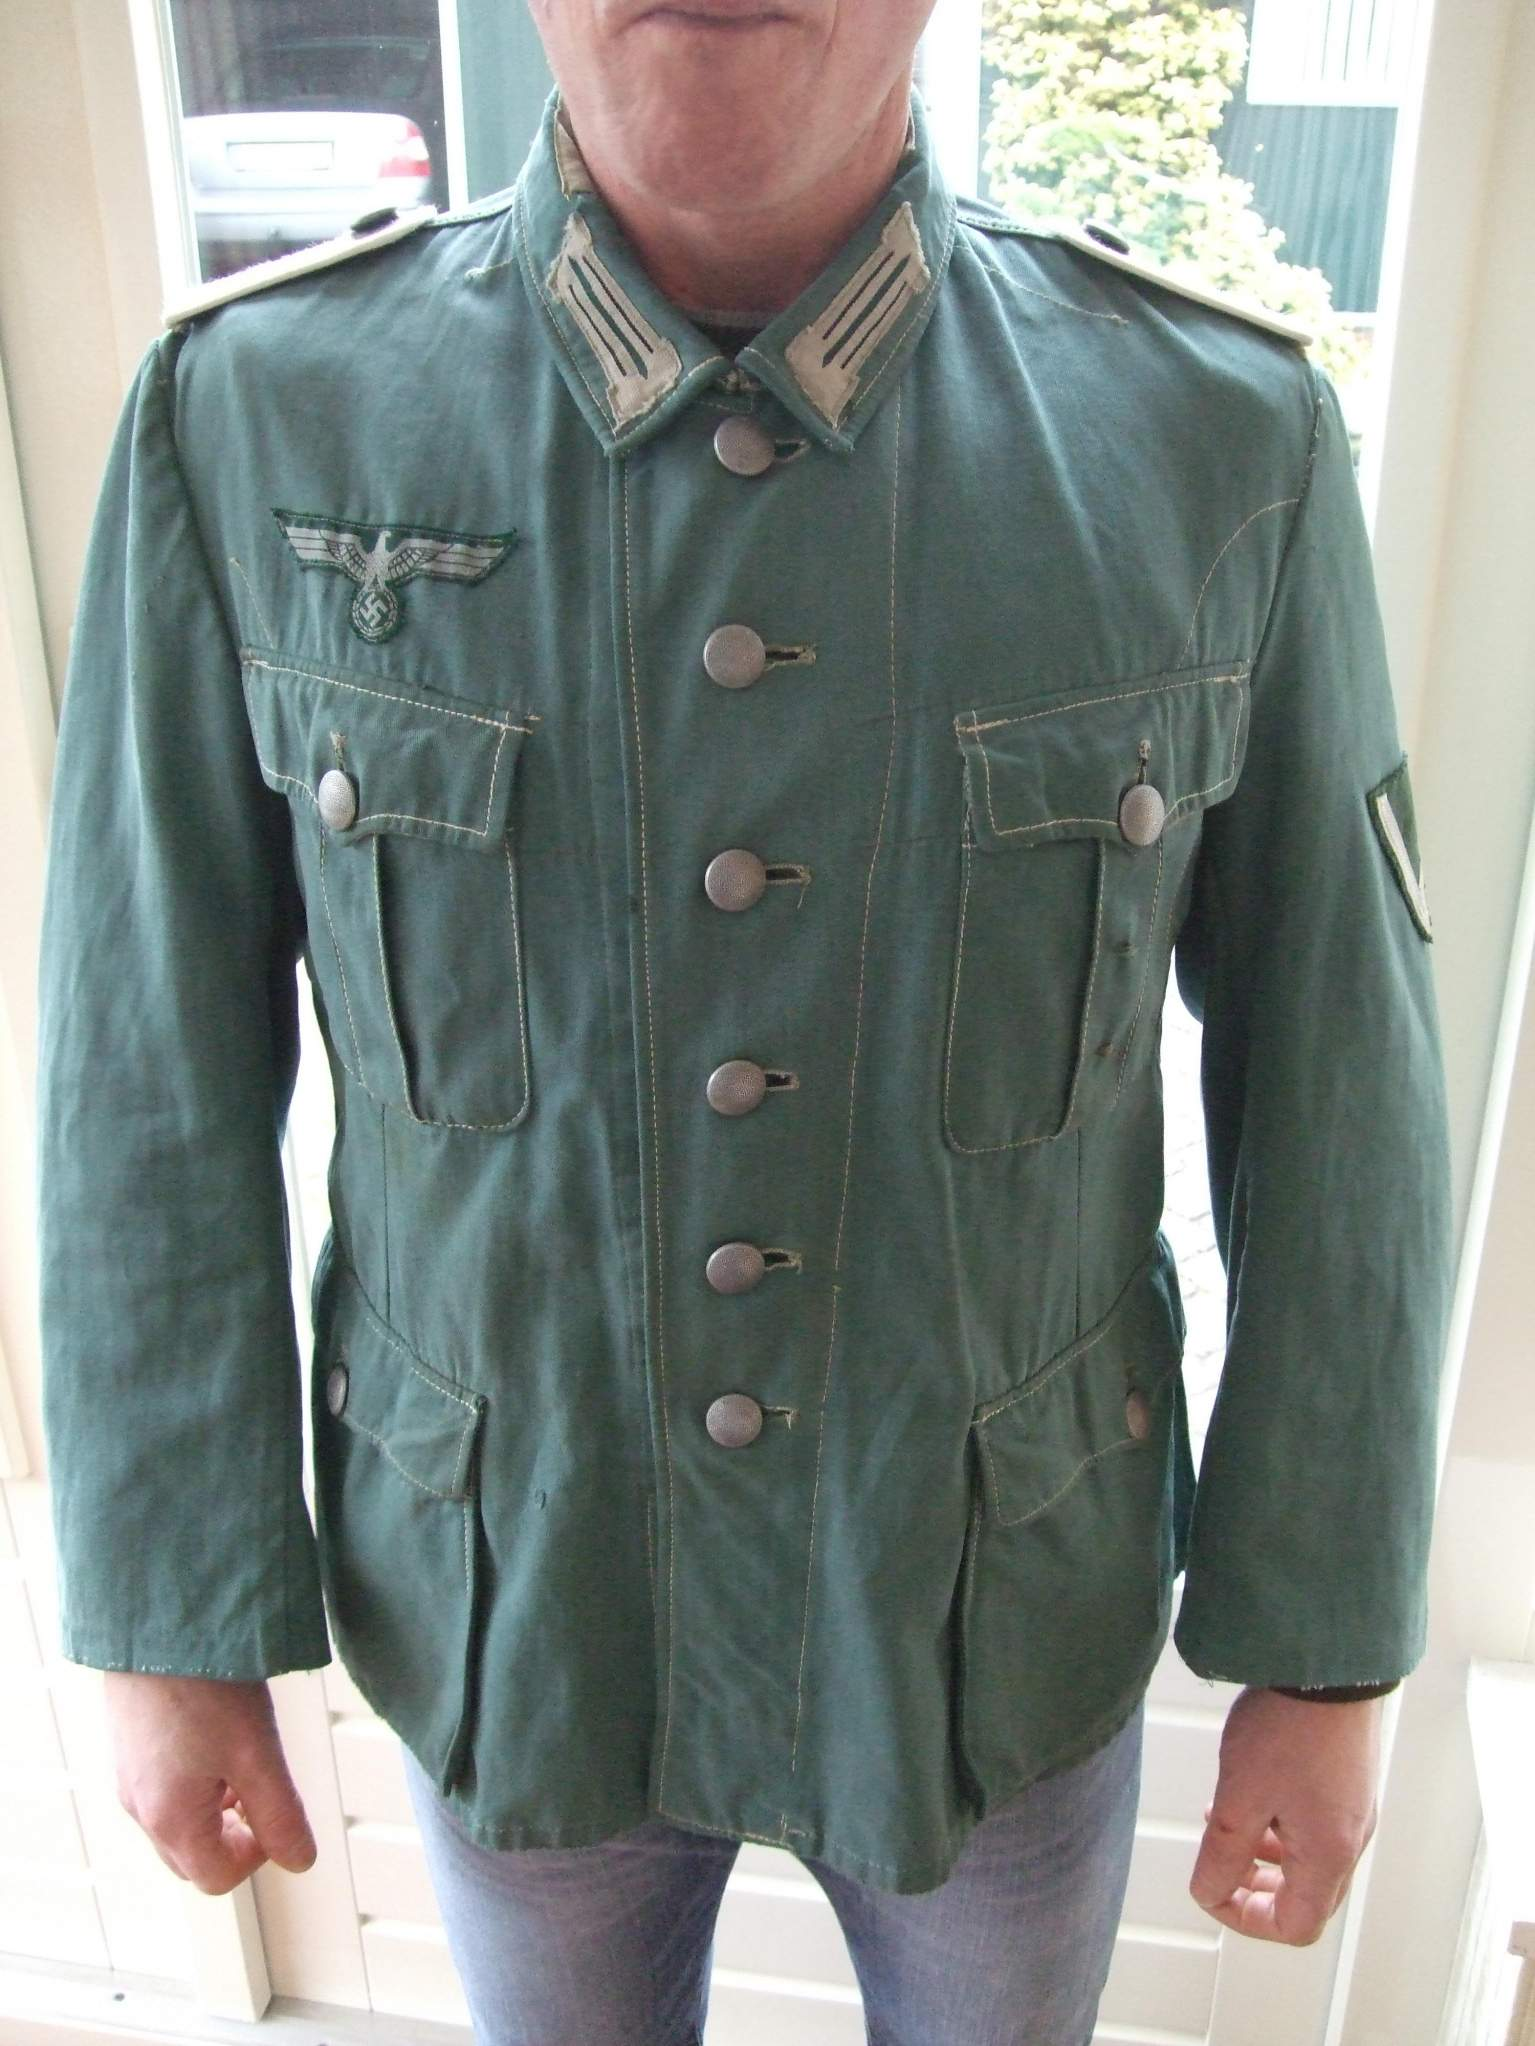 wehrmacht uniform real